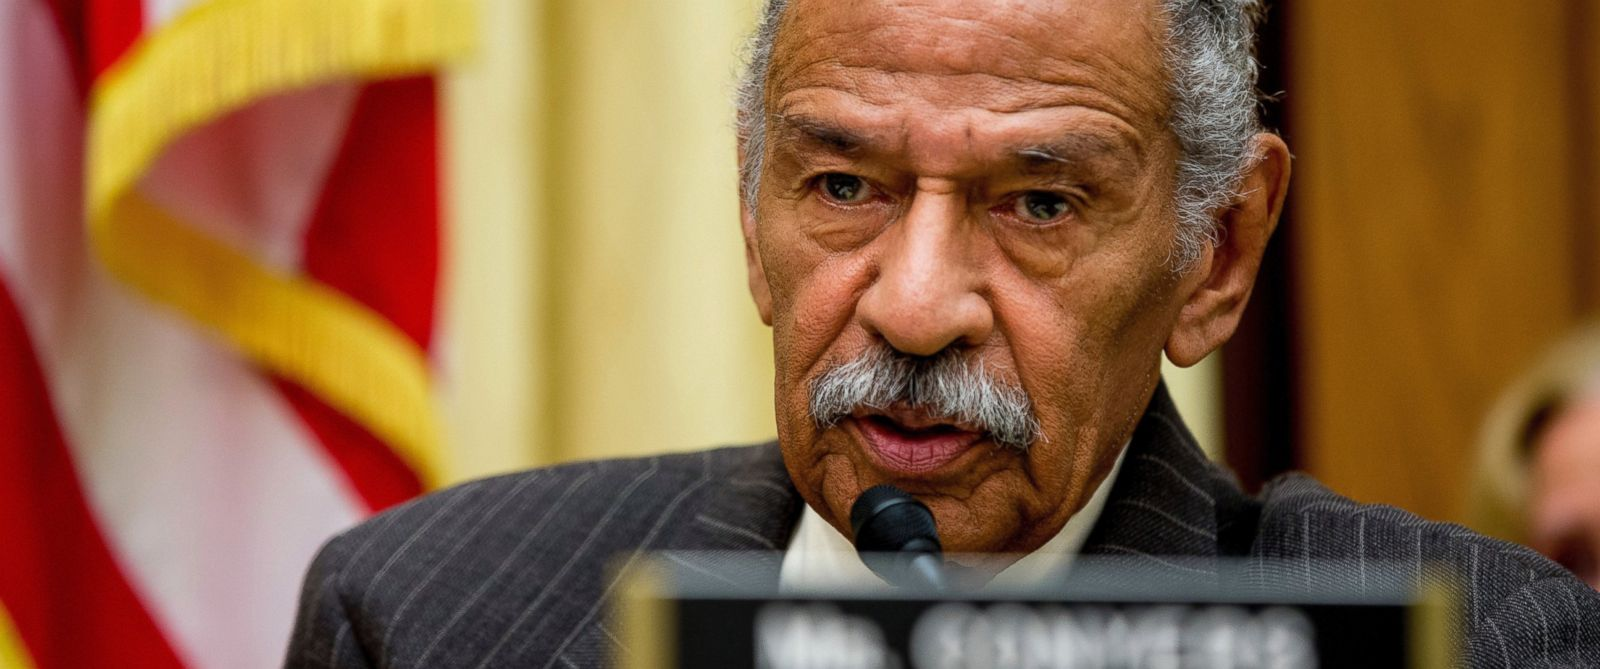 Rep. John Conyers Jr >> Congressman's Missing Son Found Safe in Houston.... : ABC News: This Week - howlDb